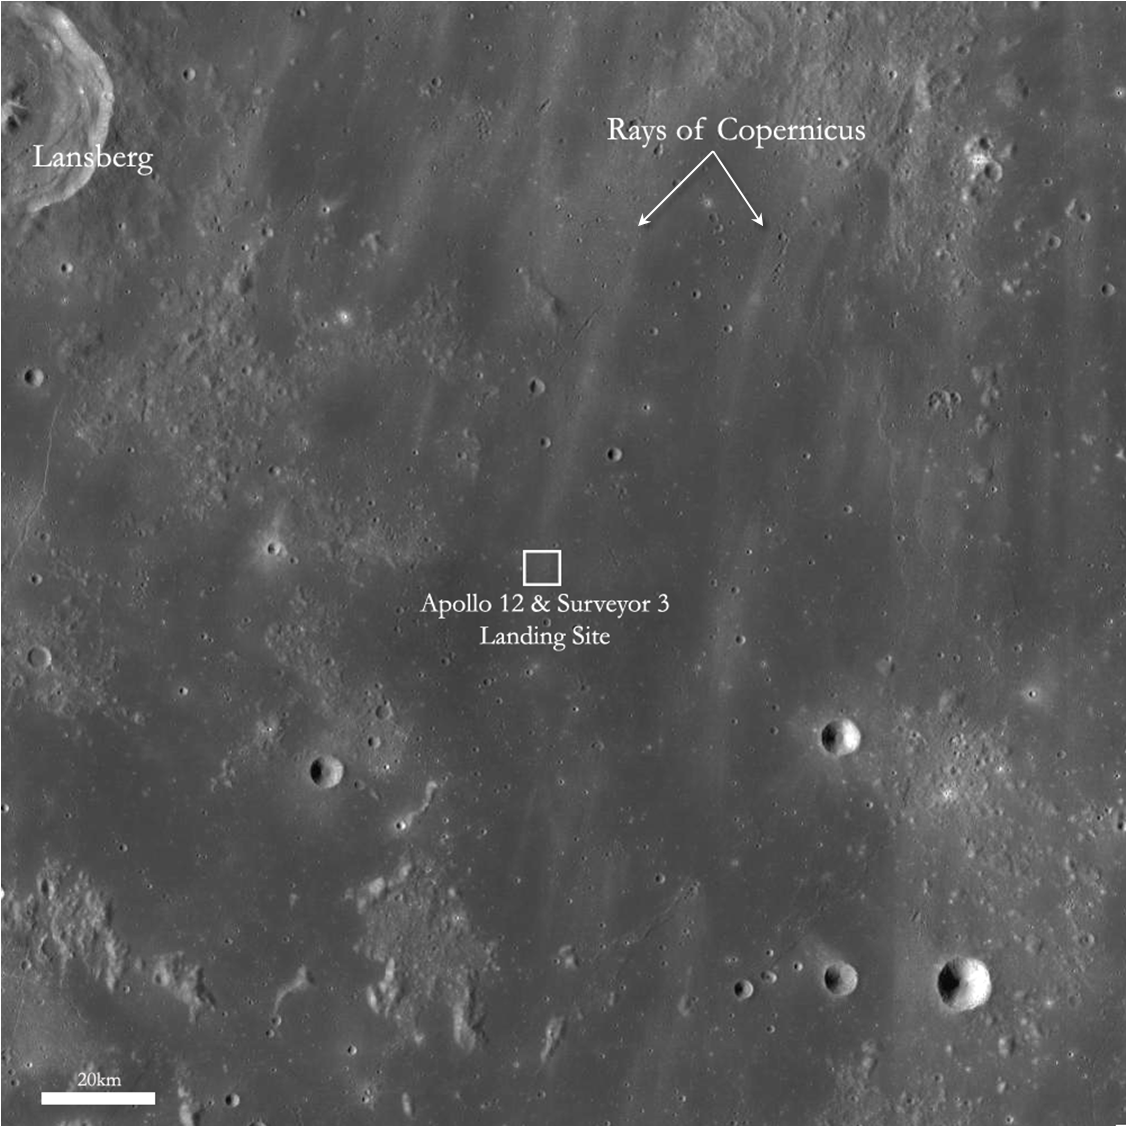 Wide Look at Apollo 12 and Surveyor 3 Landing Sites